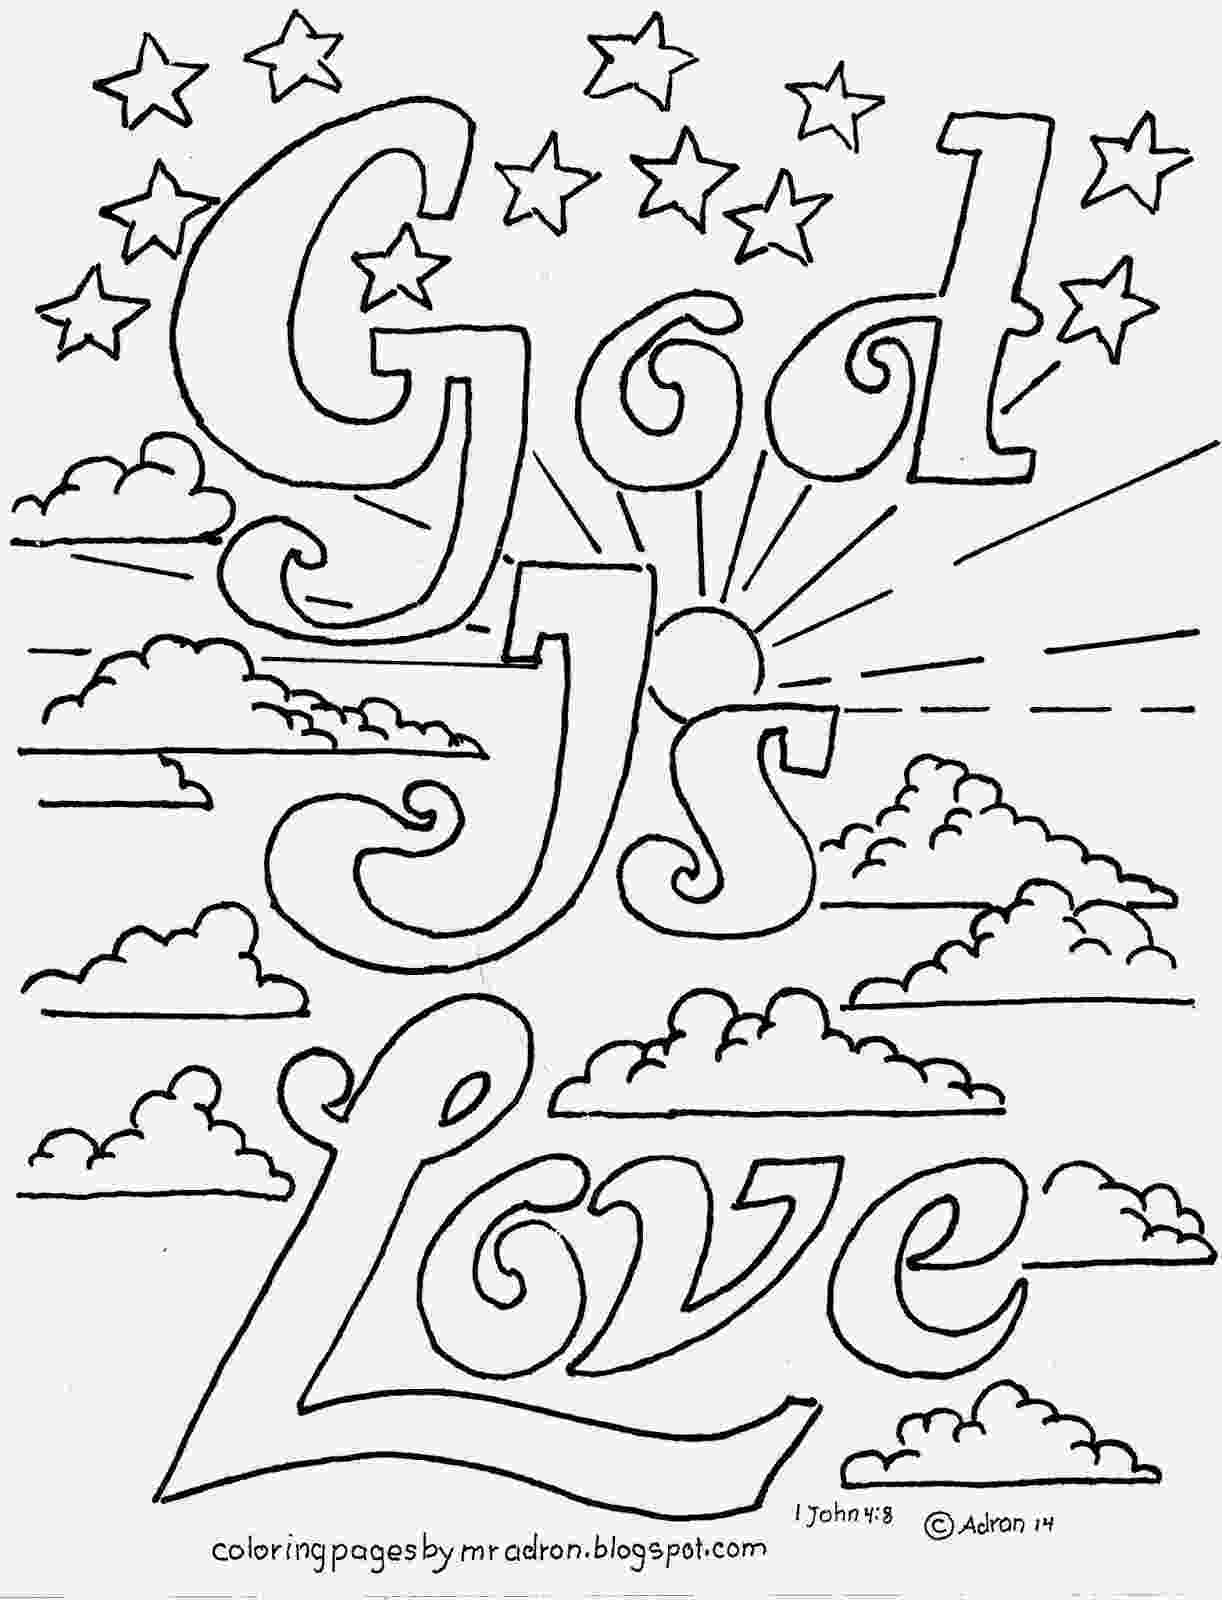 free printable love coloring pages quoti love you quot coloring pages coloring pages free printable love